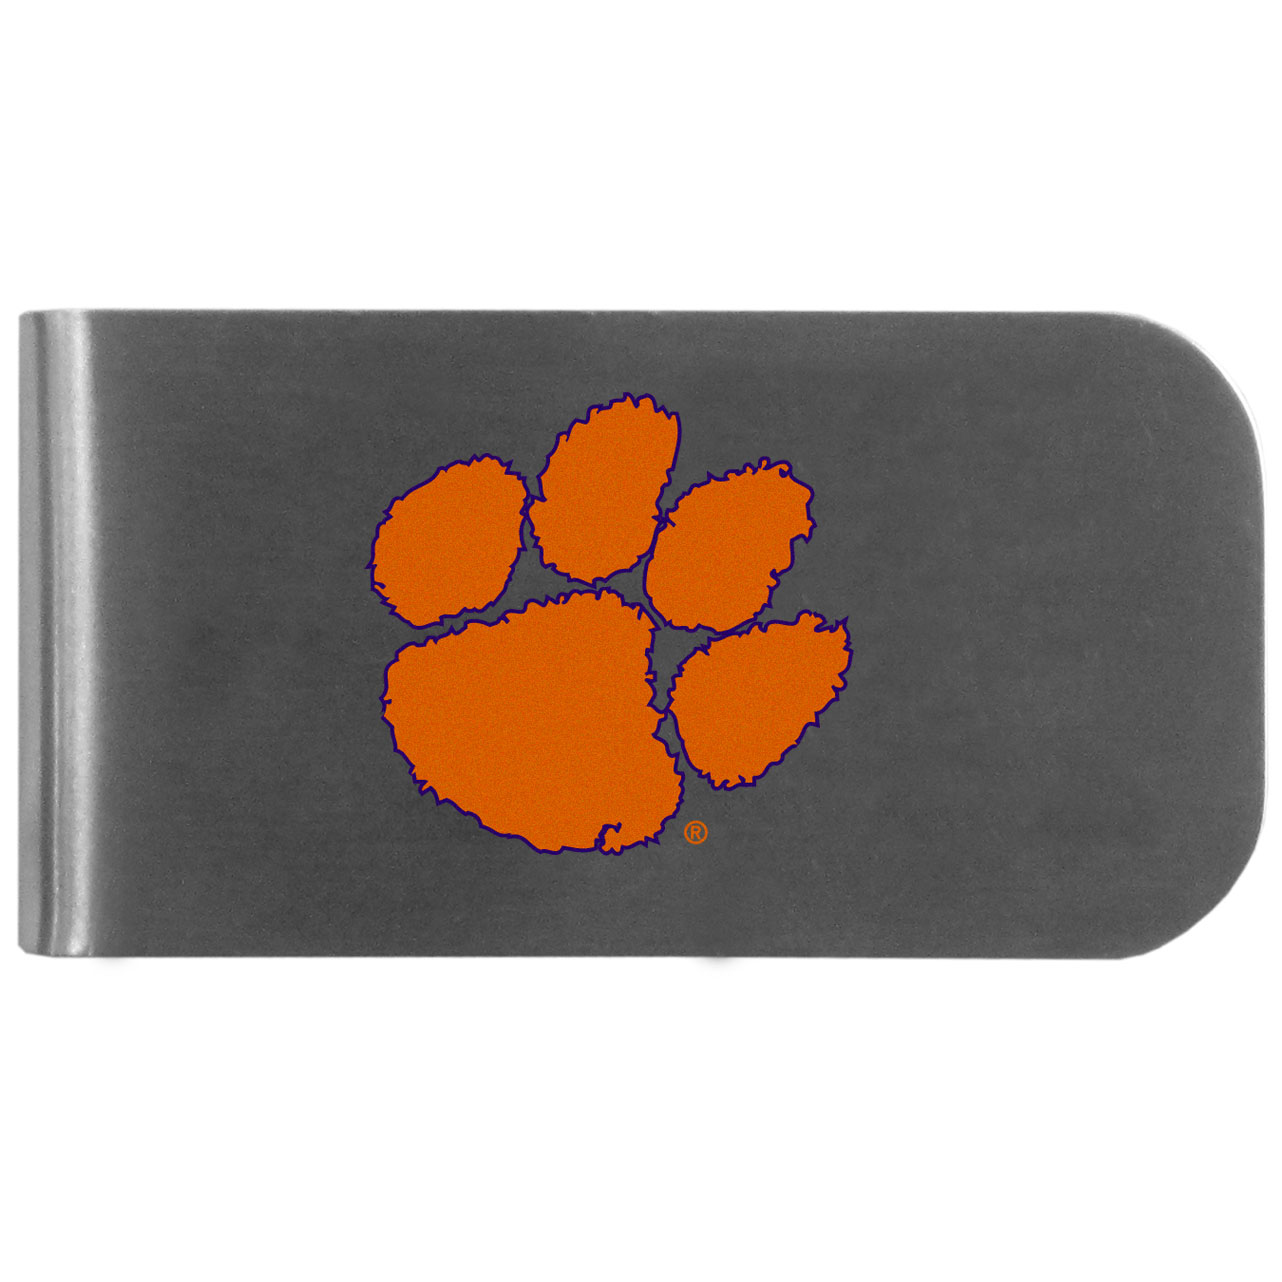 Clemson Tigers Logo Bottle Opener Money Clip - This unique money clip features a classic, brushed-metal finish with a handy bottle opener feature on the back. The clip has the Clemson Tigers logo expertly printed on the front of the clip.